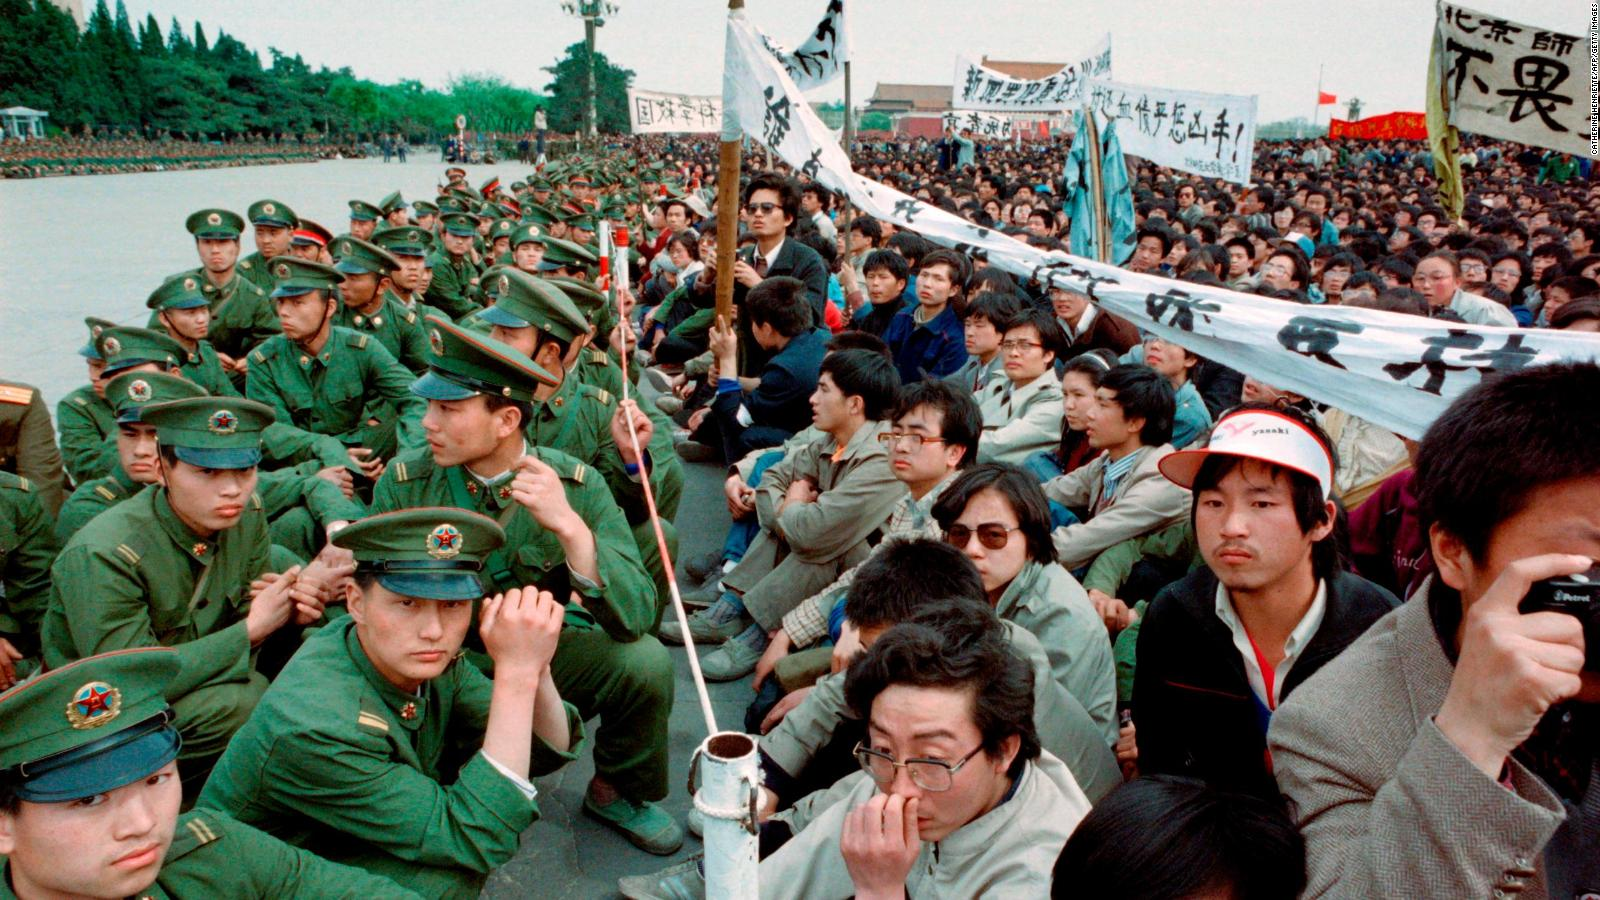 Tiananmen Square massacre: How Beijing turned on its own people - CNN